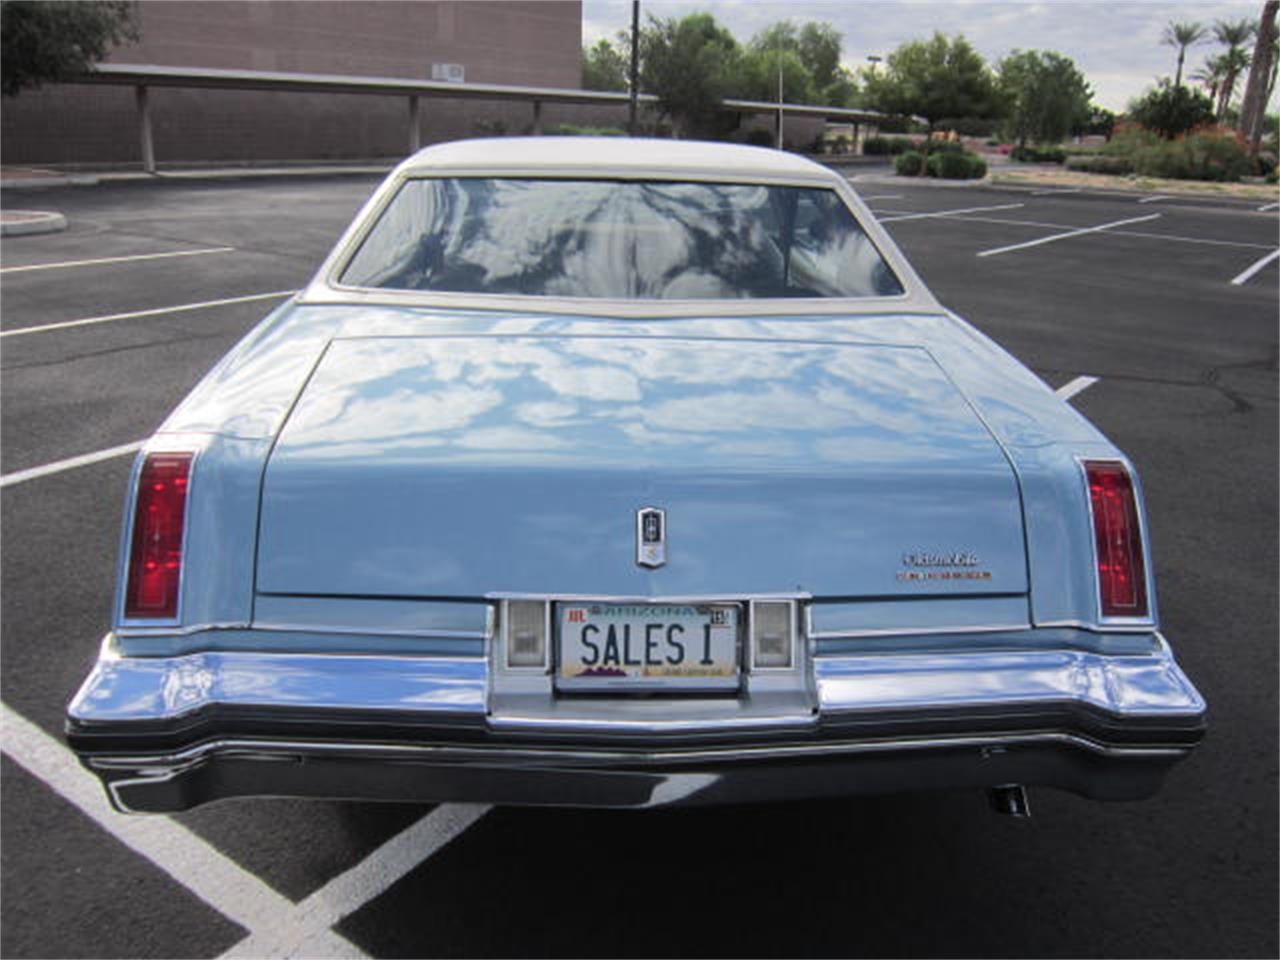 Large Picture of '77 Oldsmobile Cutlass located in Glendale Arizona Offered by a Private Seller - DISY